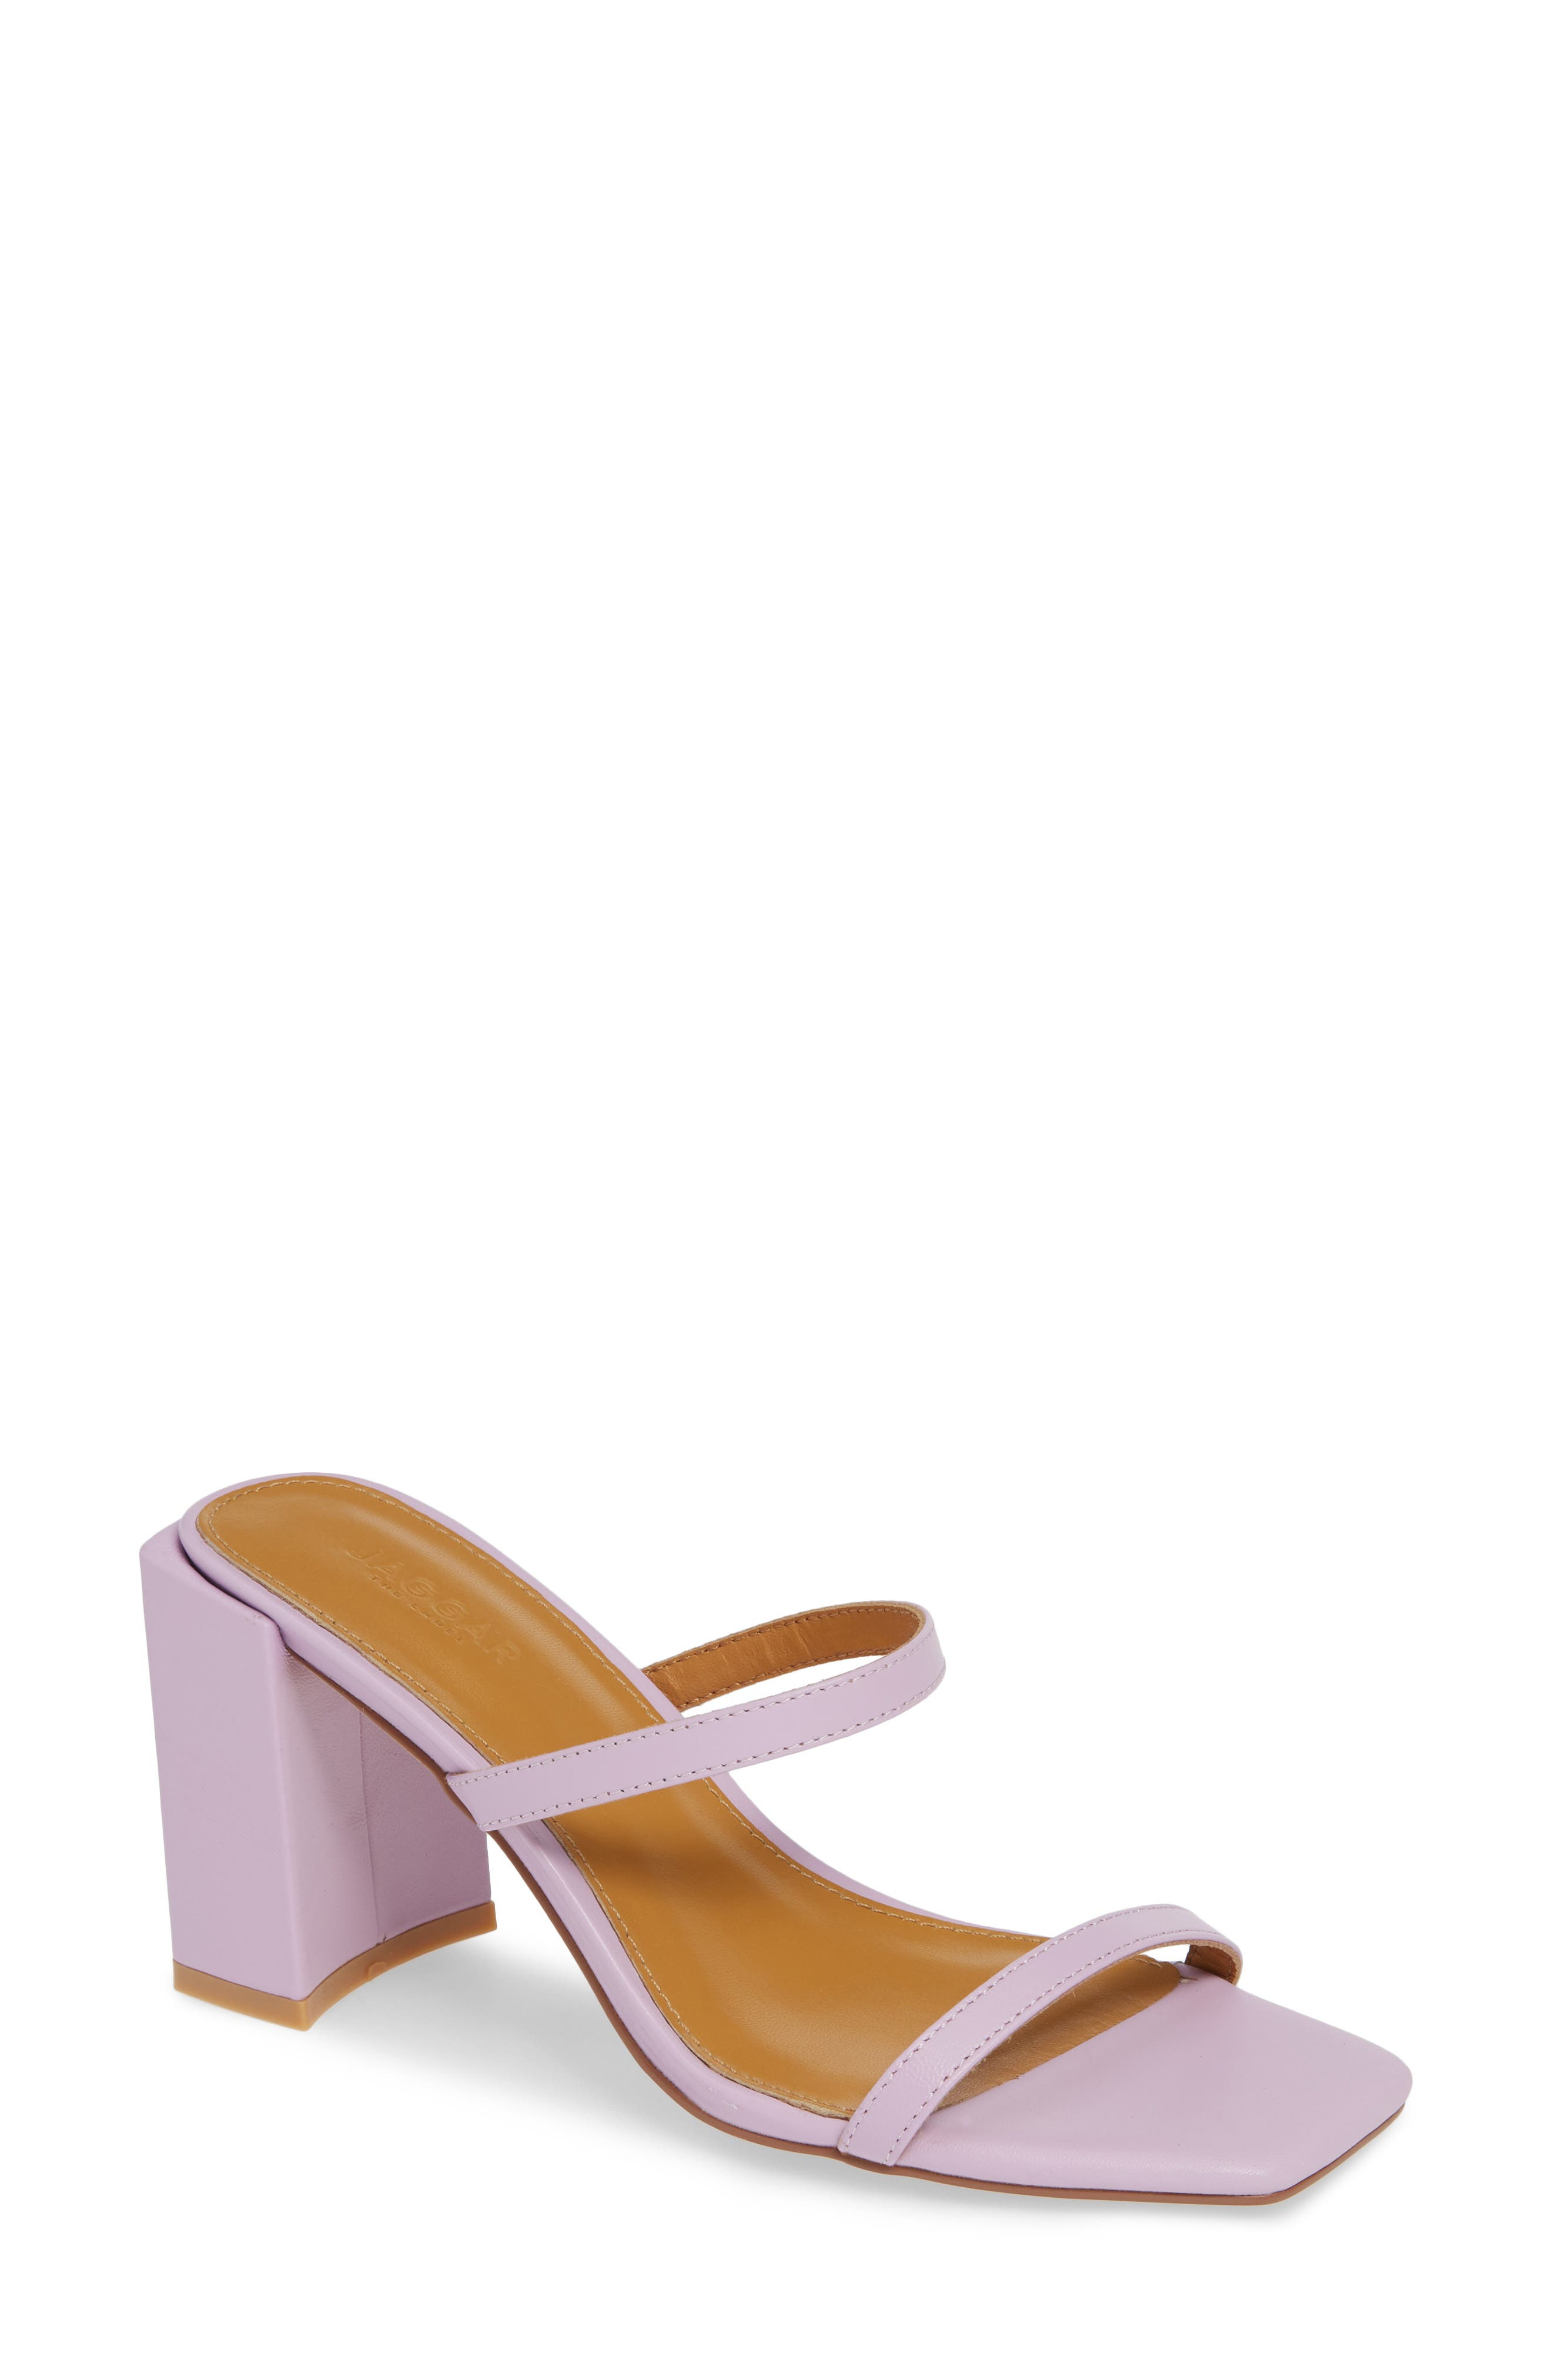 Strappy Slide Sandal, Main, color, LILAC LEATHER